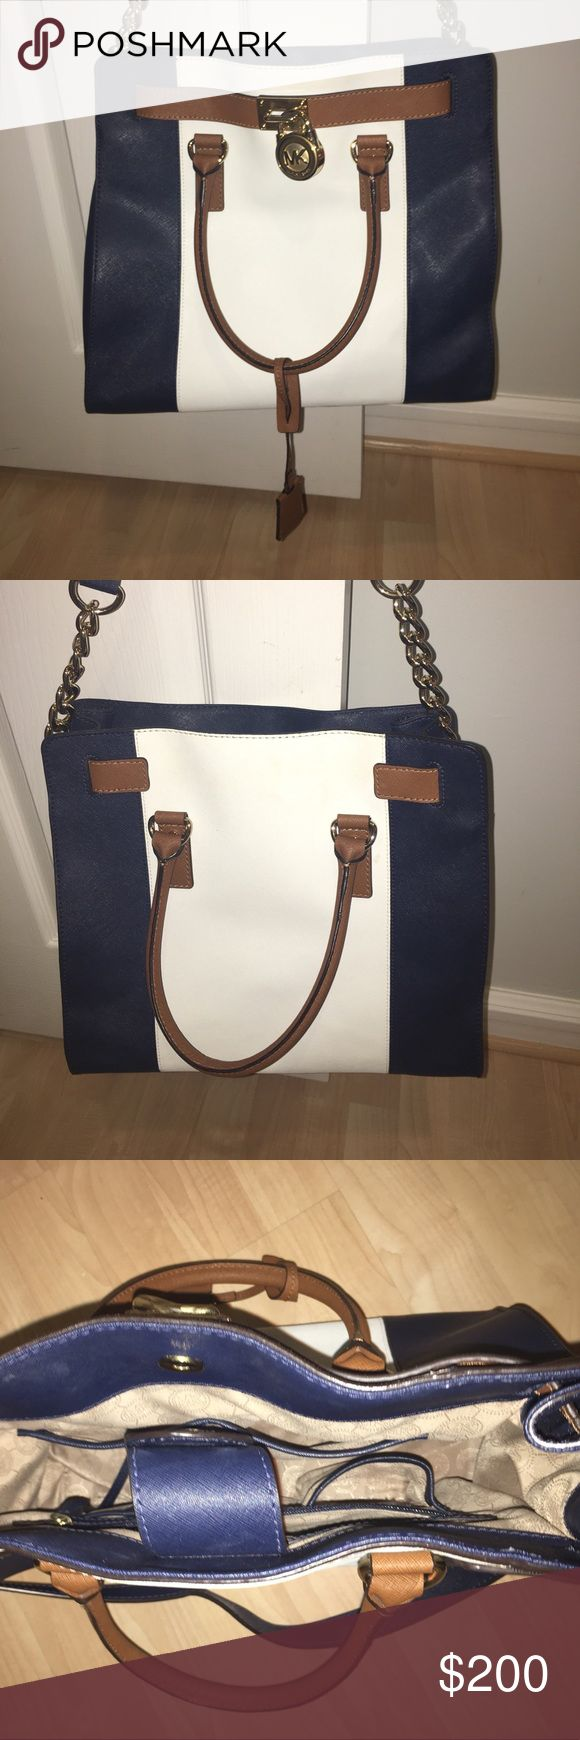 Authentic Michael Kors Bag Brand new condition. Only used once for a few hours just too big for what I need. Bought directly from the Michael Kors store. No signs of wear looks brand new!12.5 inches by 9 3/4. Make me an offer! MICHAEL Michael Kors Bags Shoulder Bags